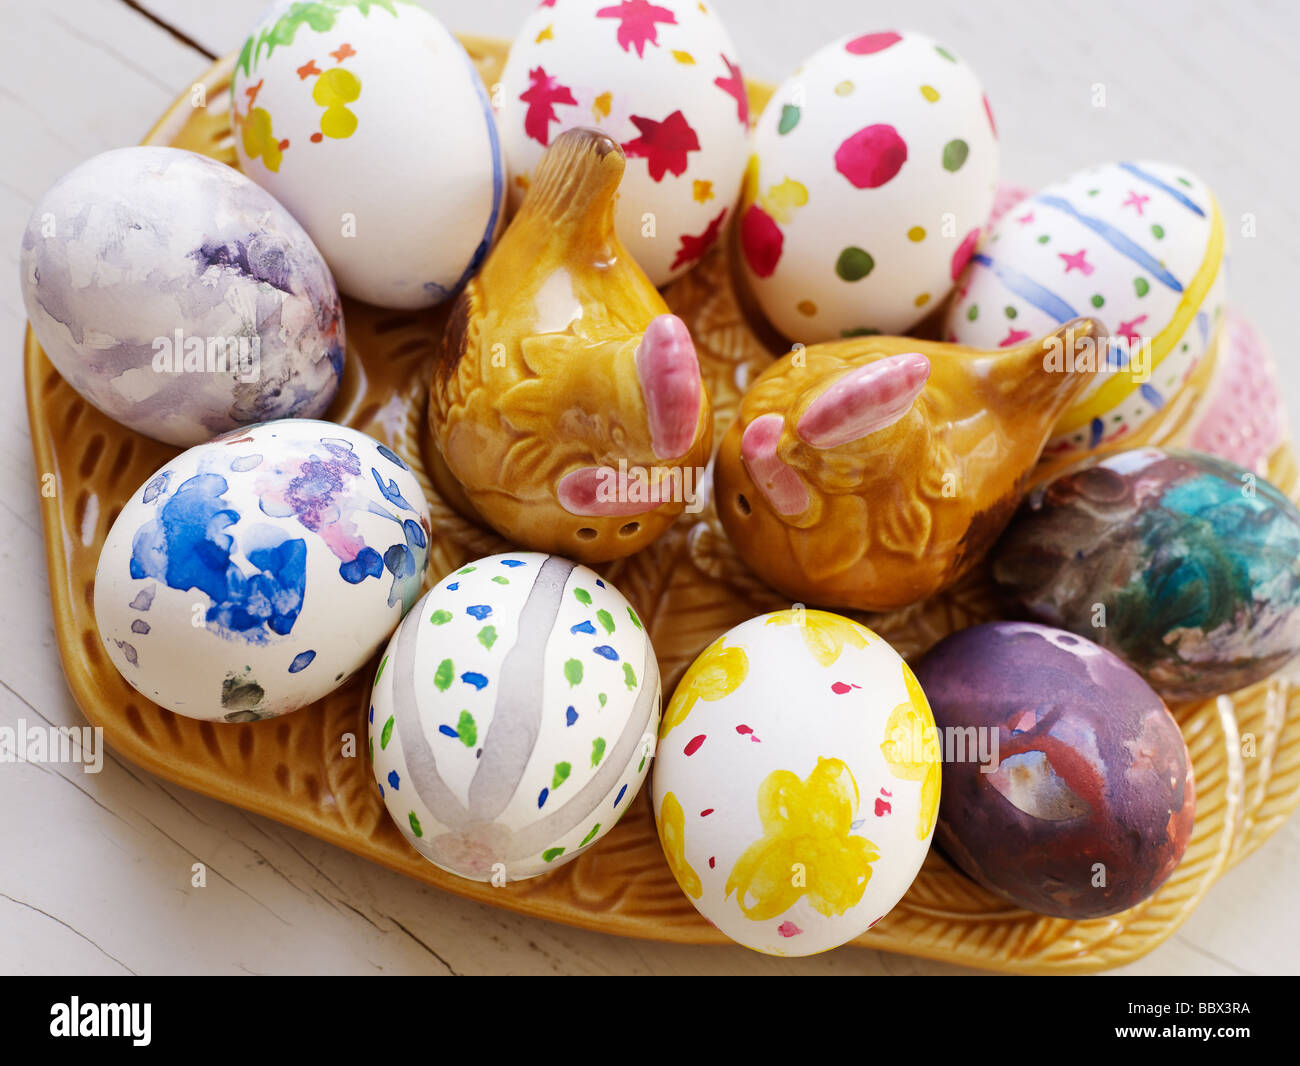 Painted eggs Sweden. - Stock Image